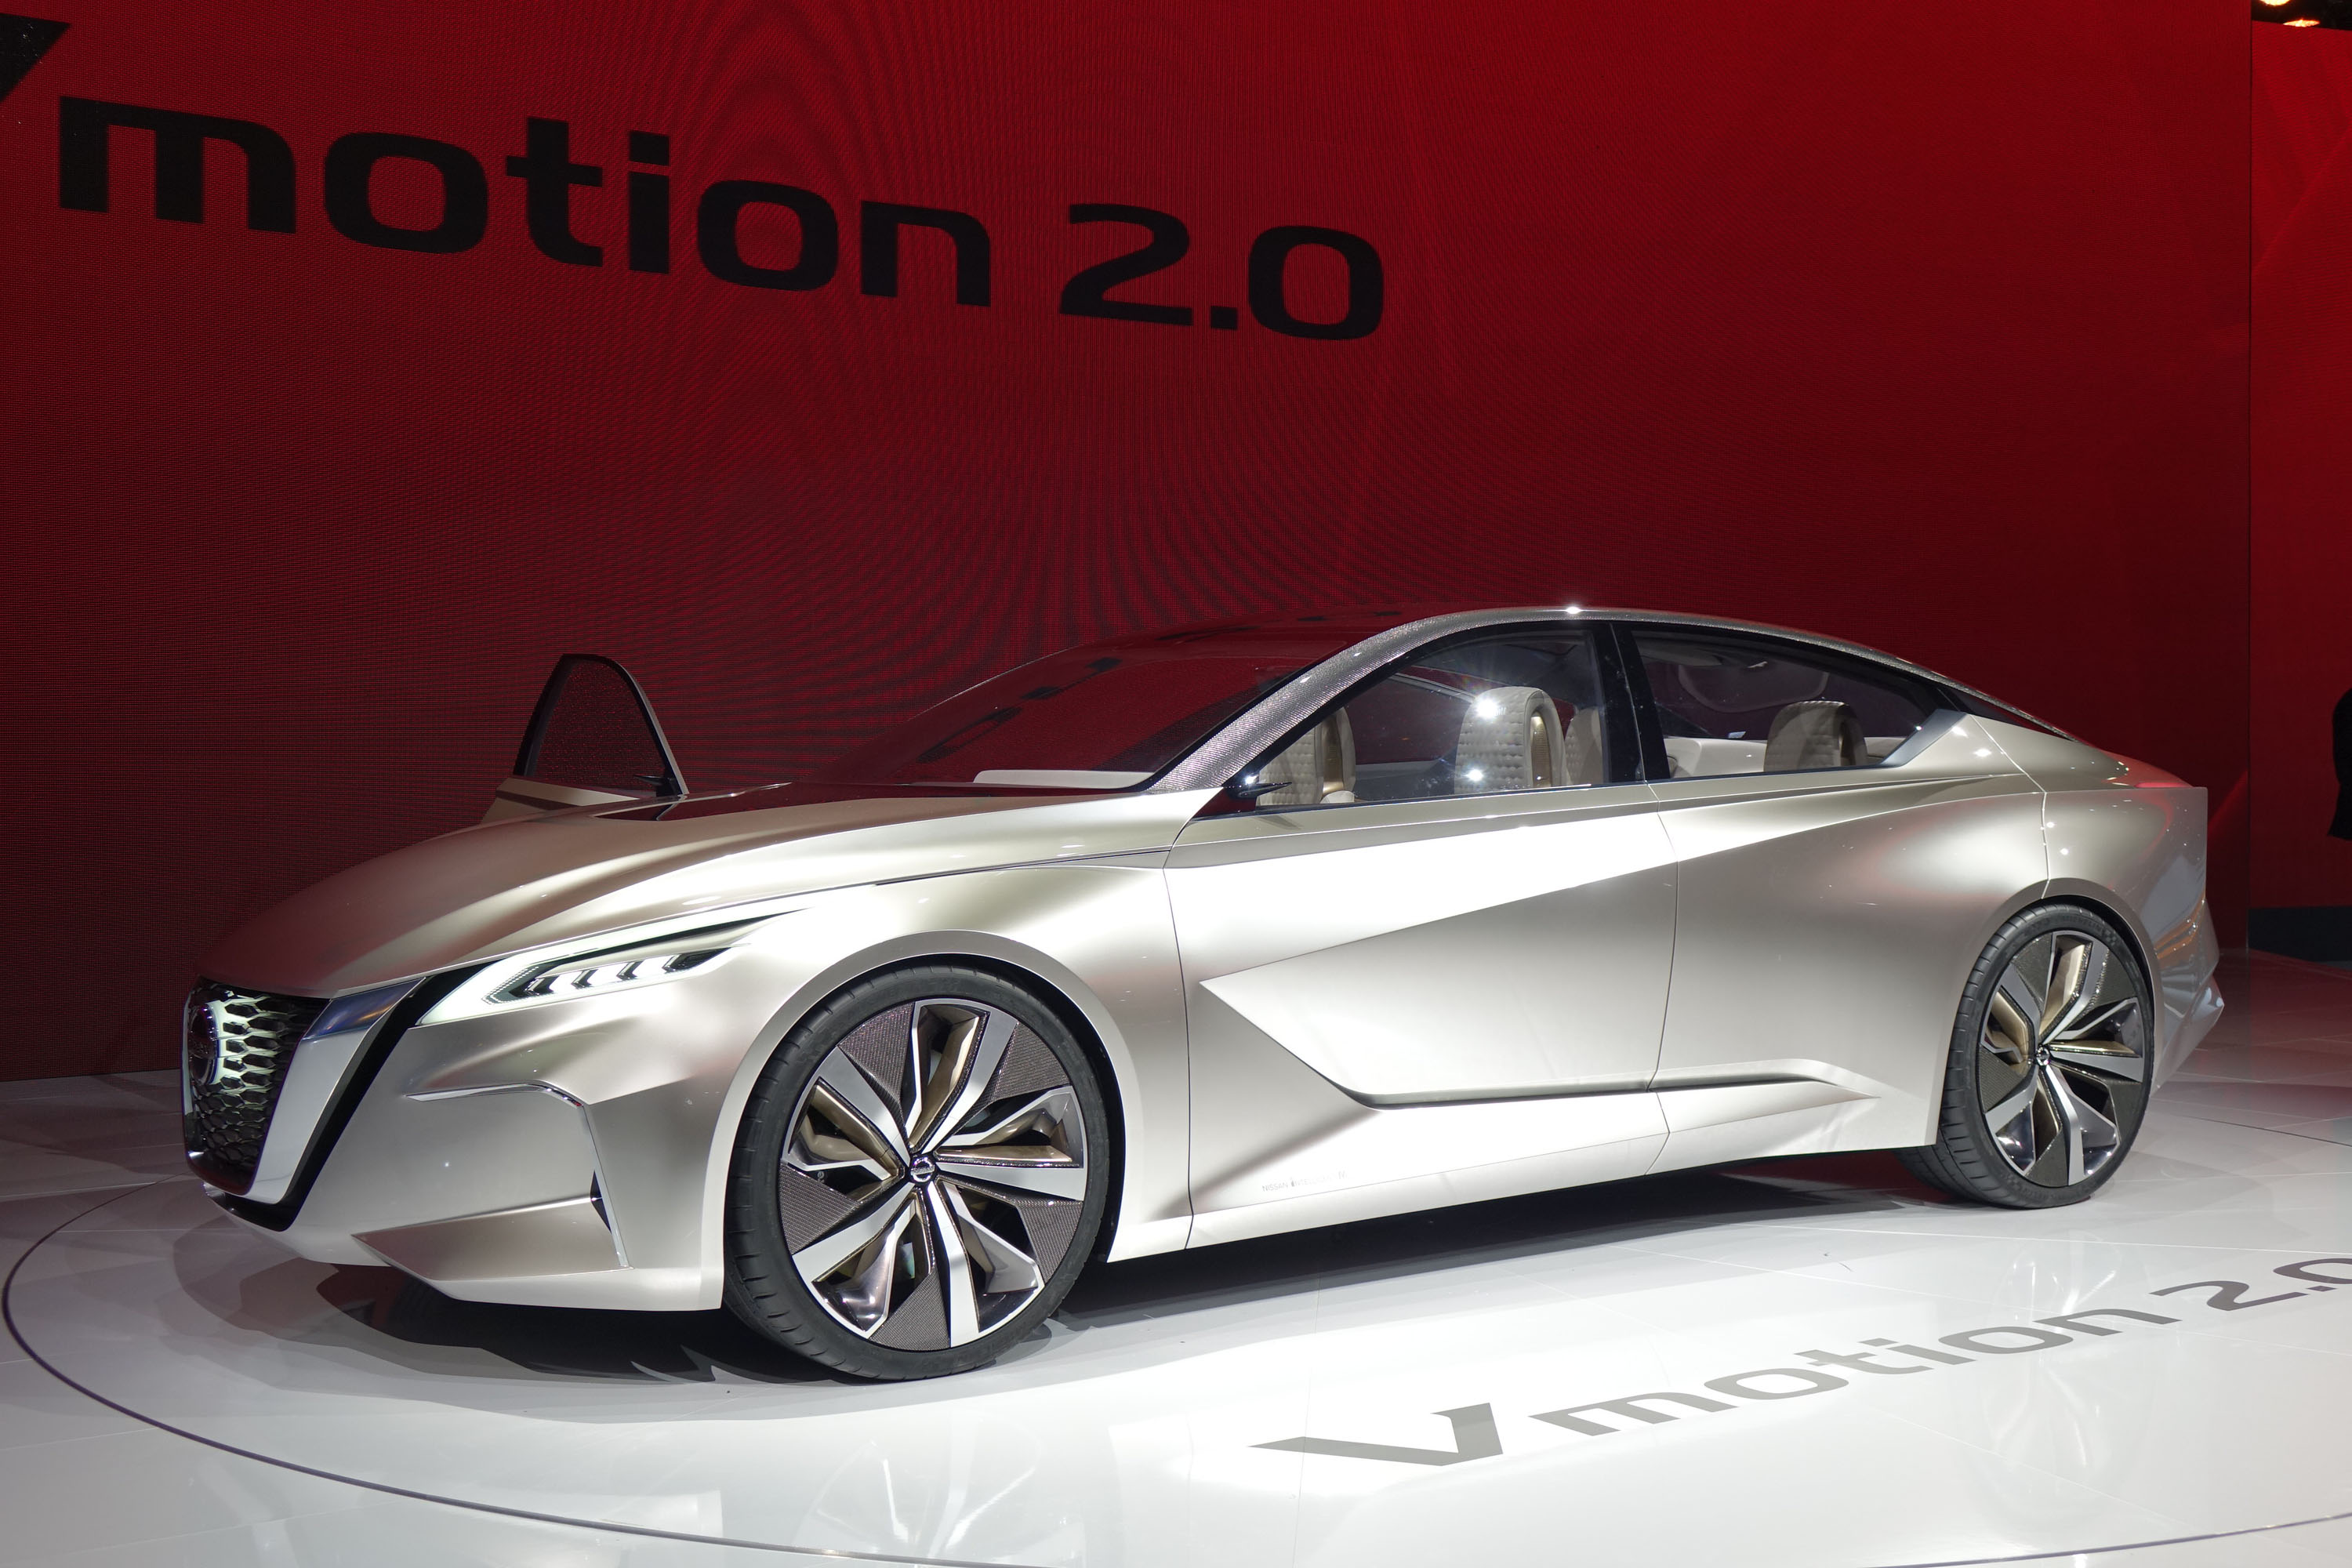 Nissan Vmotion 2.0 concept paves way for next-gen Altima